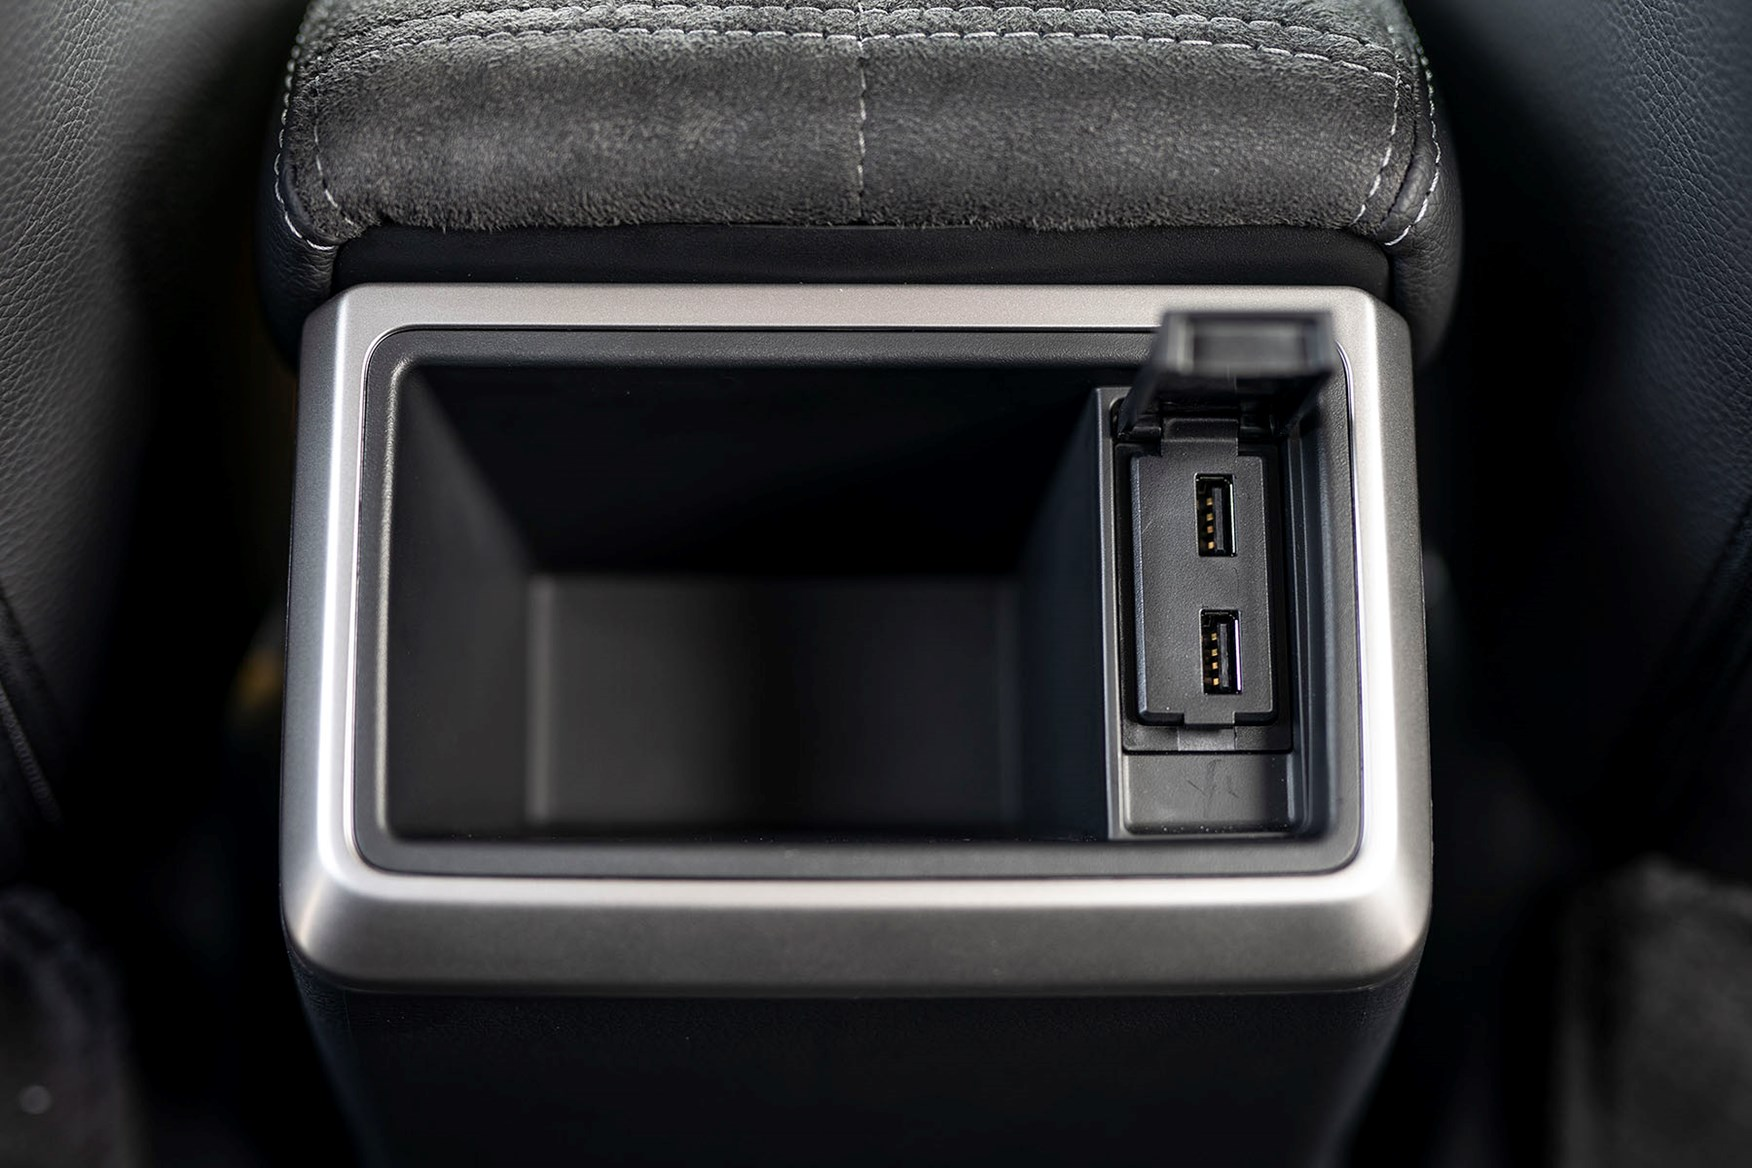 2019 Mitsubishi L200 Series 6, rear USB charging ports